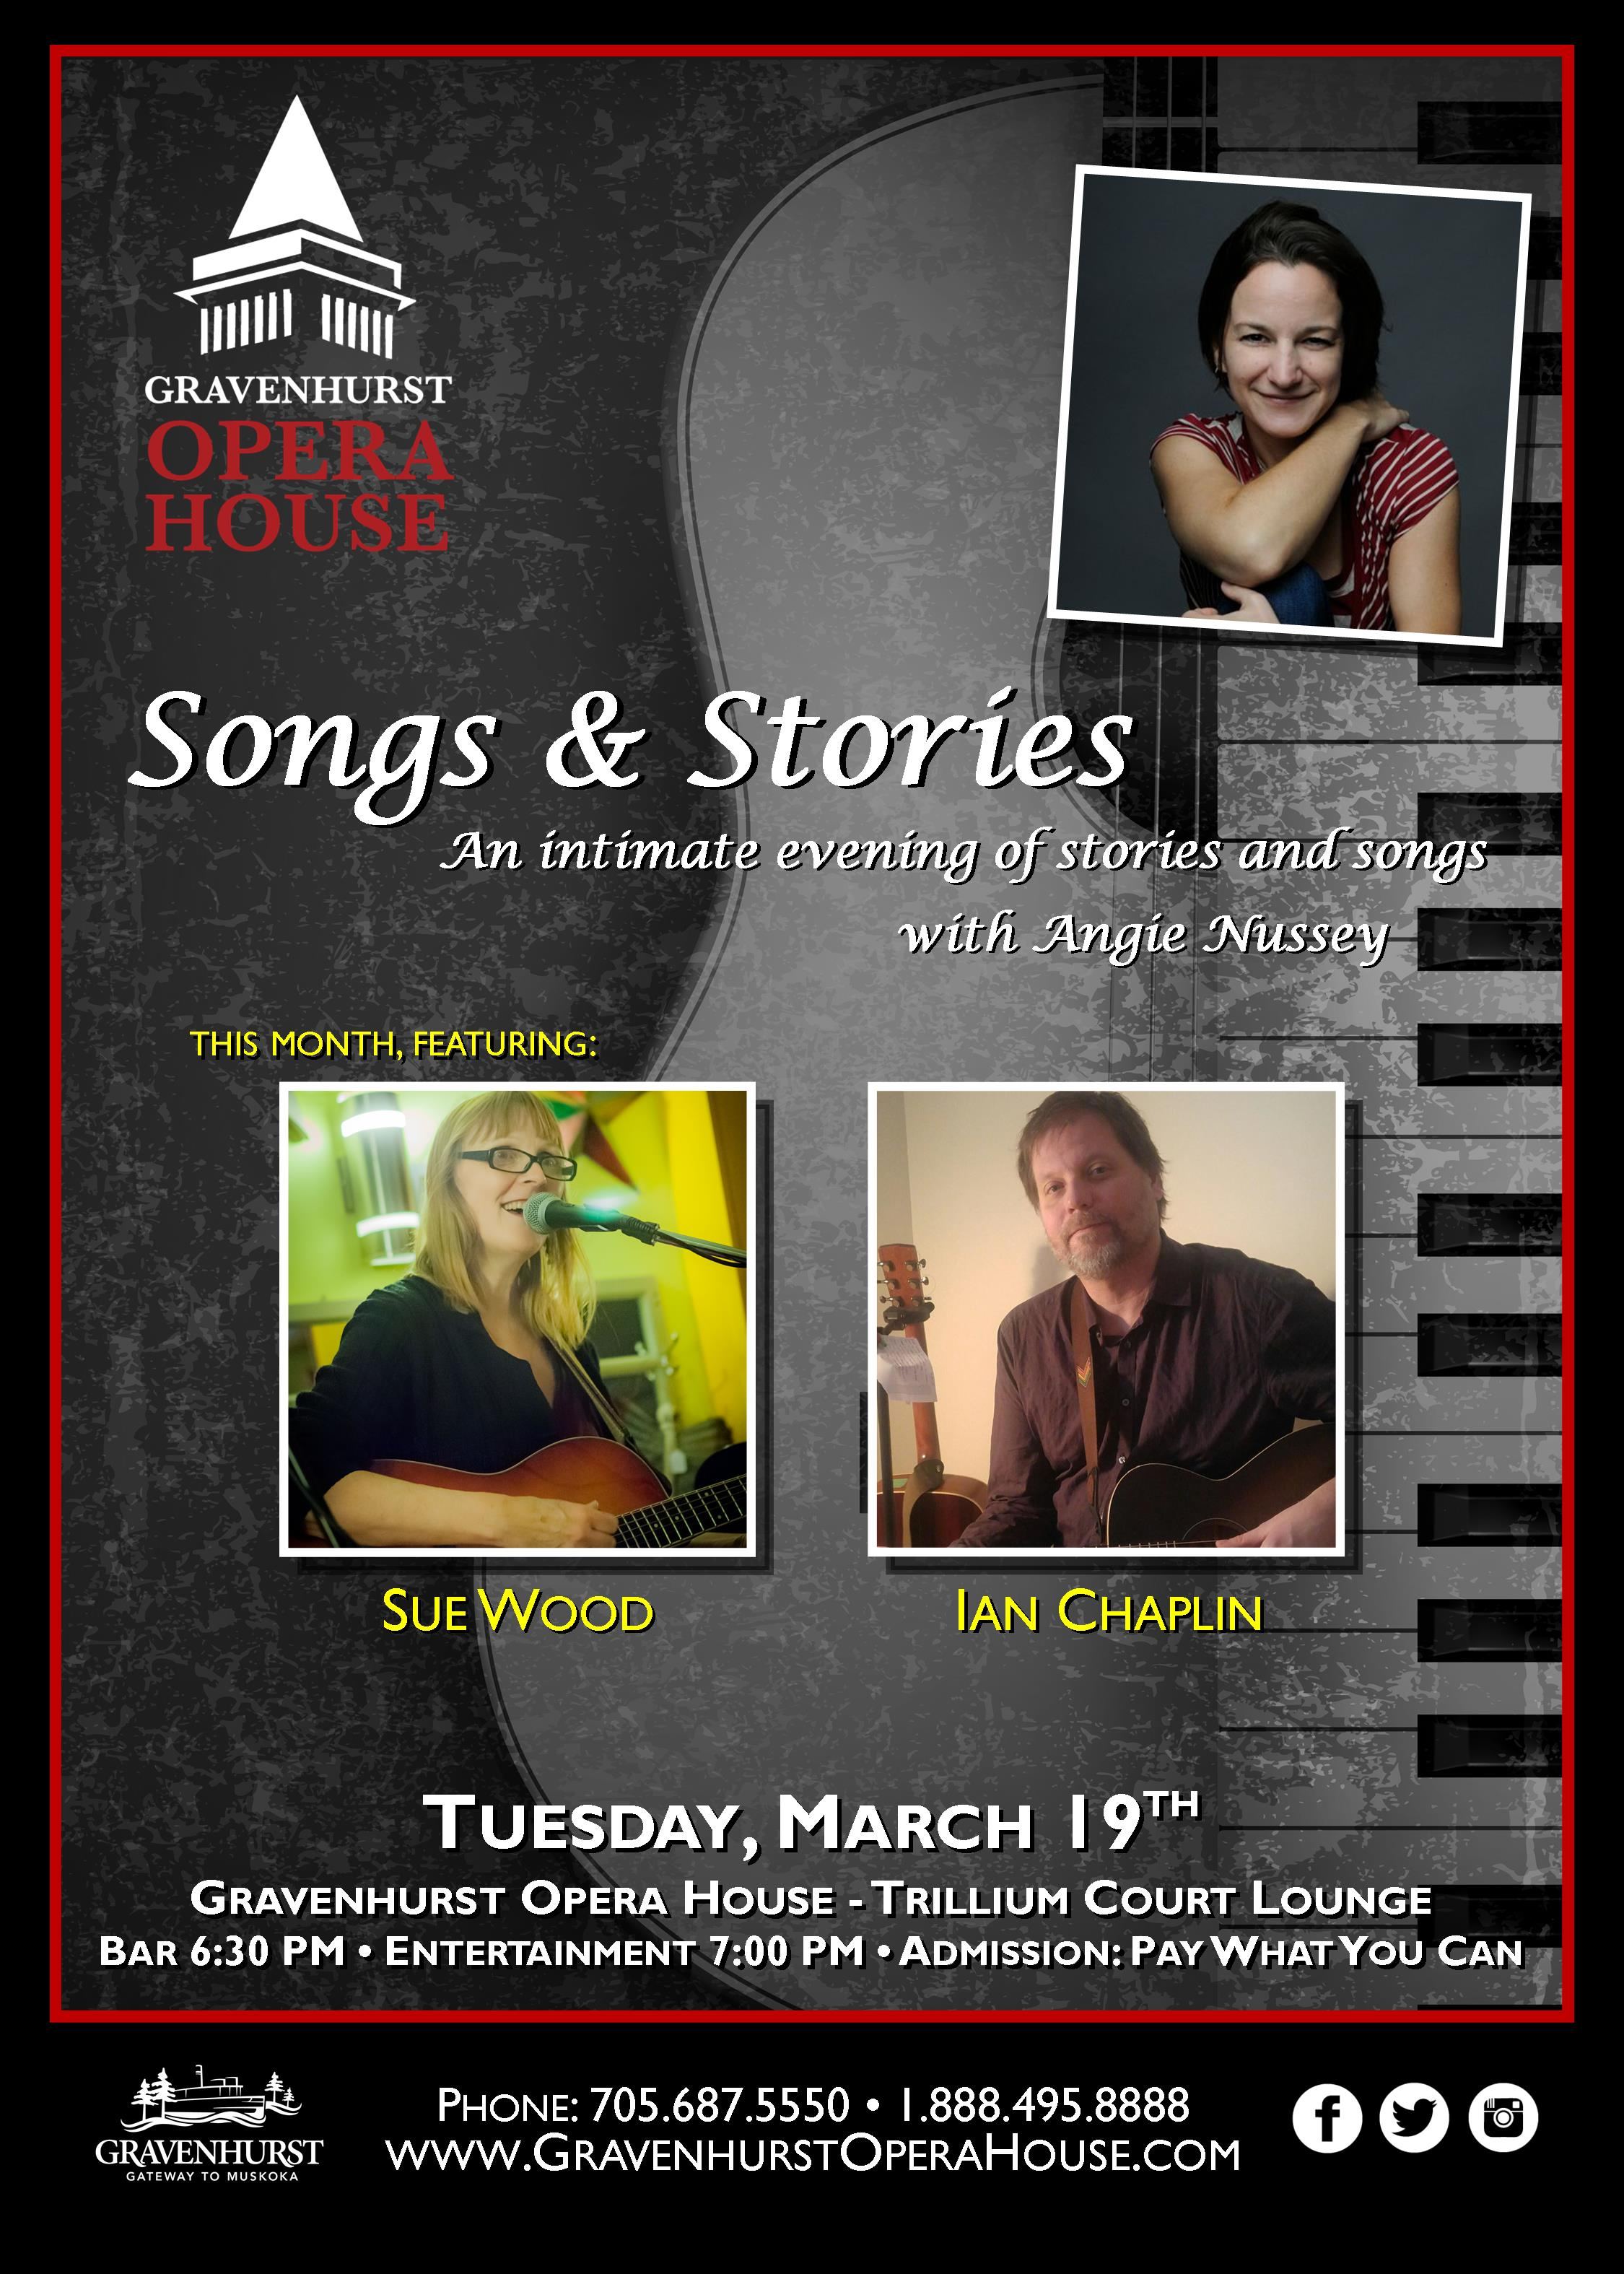 promotional poster for the upcoming March installment of Songs & Stories happening March 19th